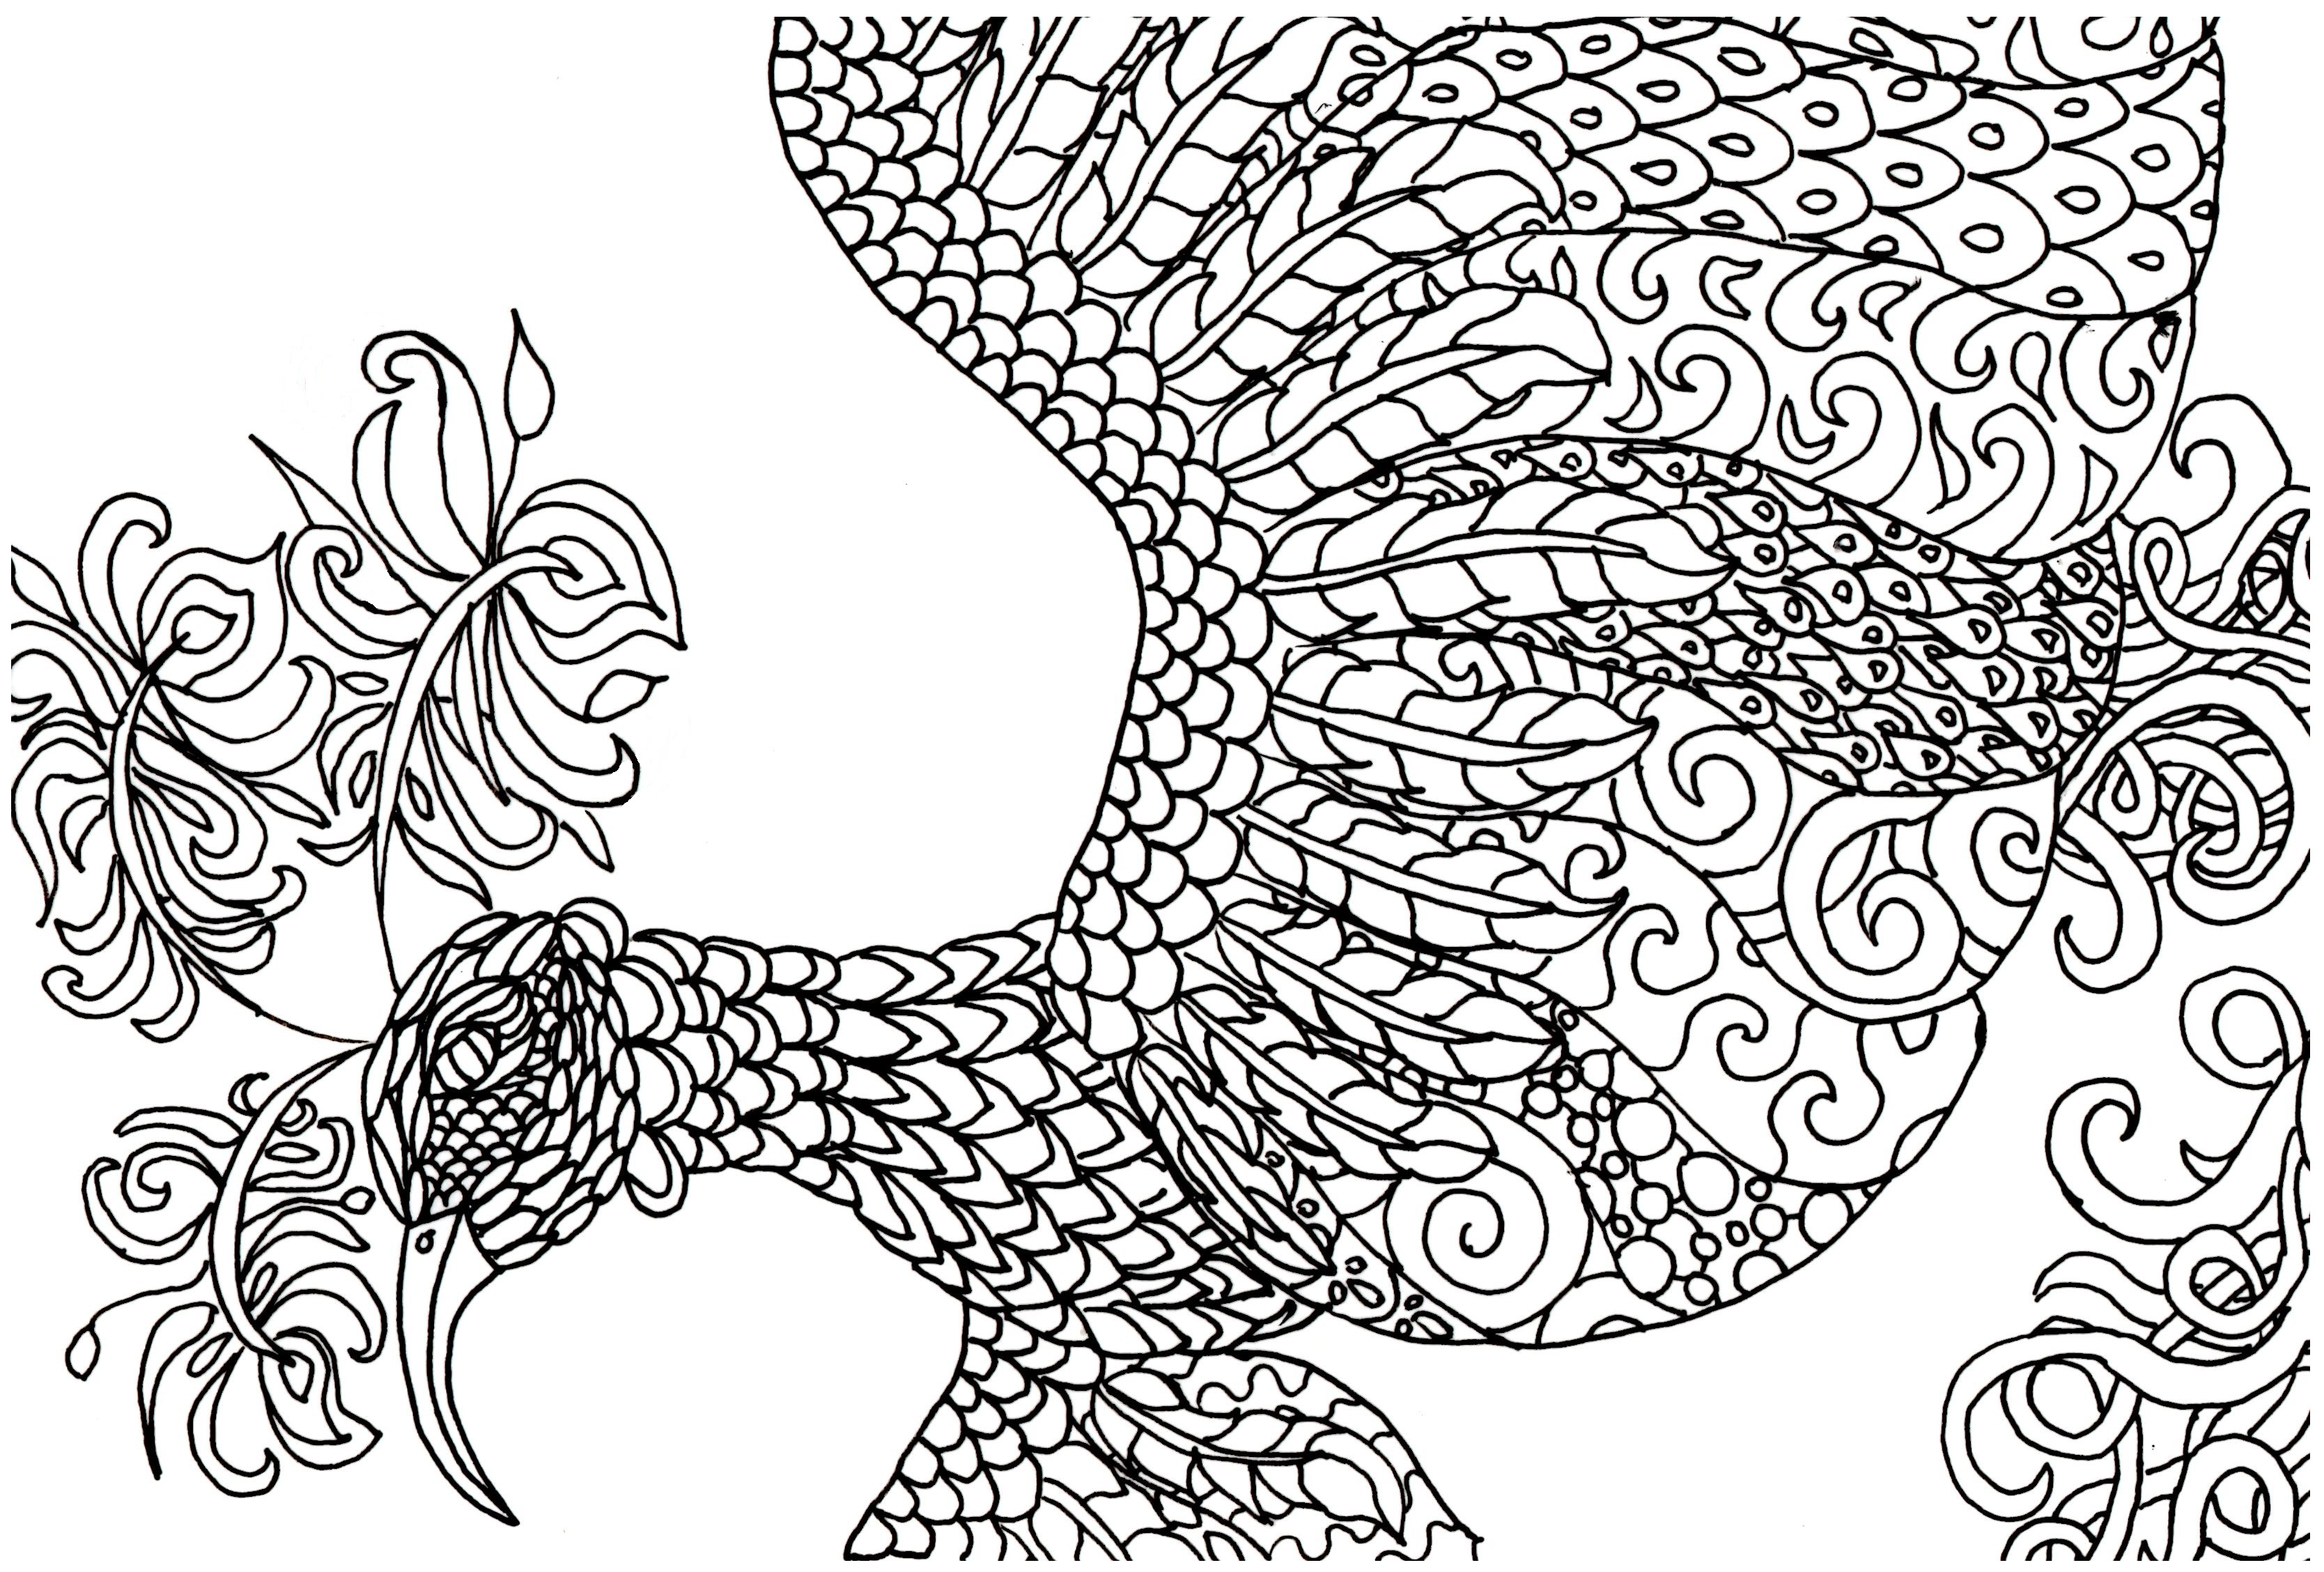 Adults colouring book pages - Fantasy Bird Simplified